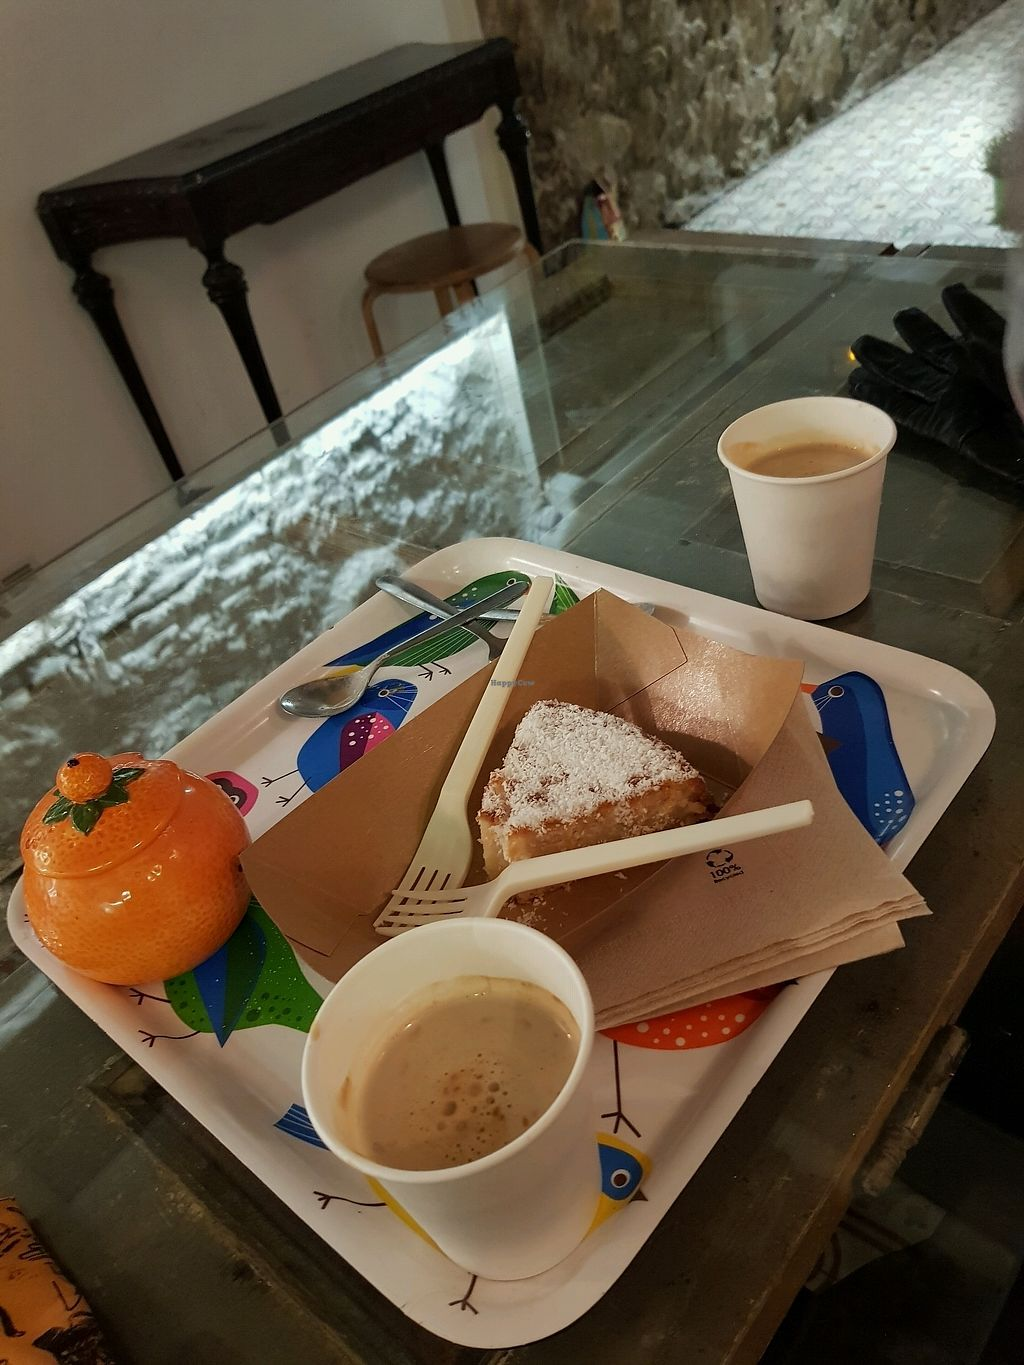 """Photo of Enjoy Vegan  by <a href=""""/members/profile/rachie18"""">rachie18</a> <br/>Cake and coffee <br/> February 10, 2018  - <a href='/contact/abuse/image/53530/357264'>Report</a>"""